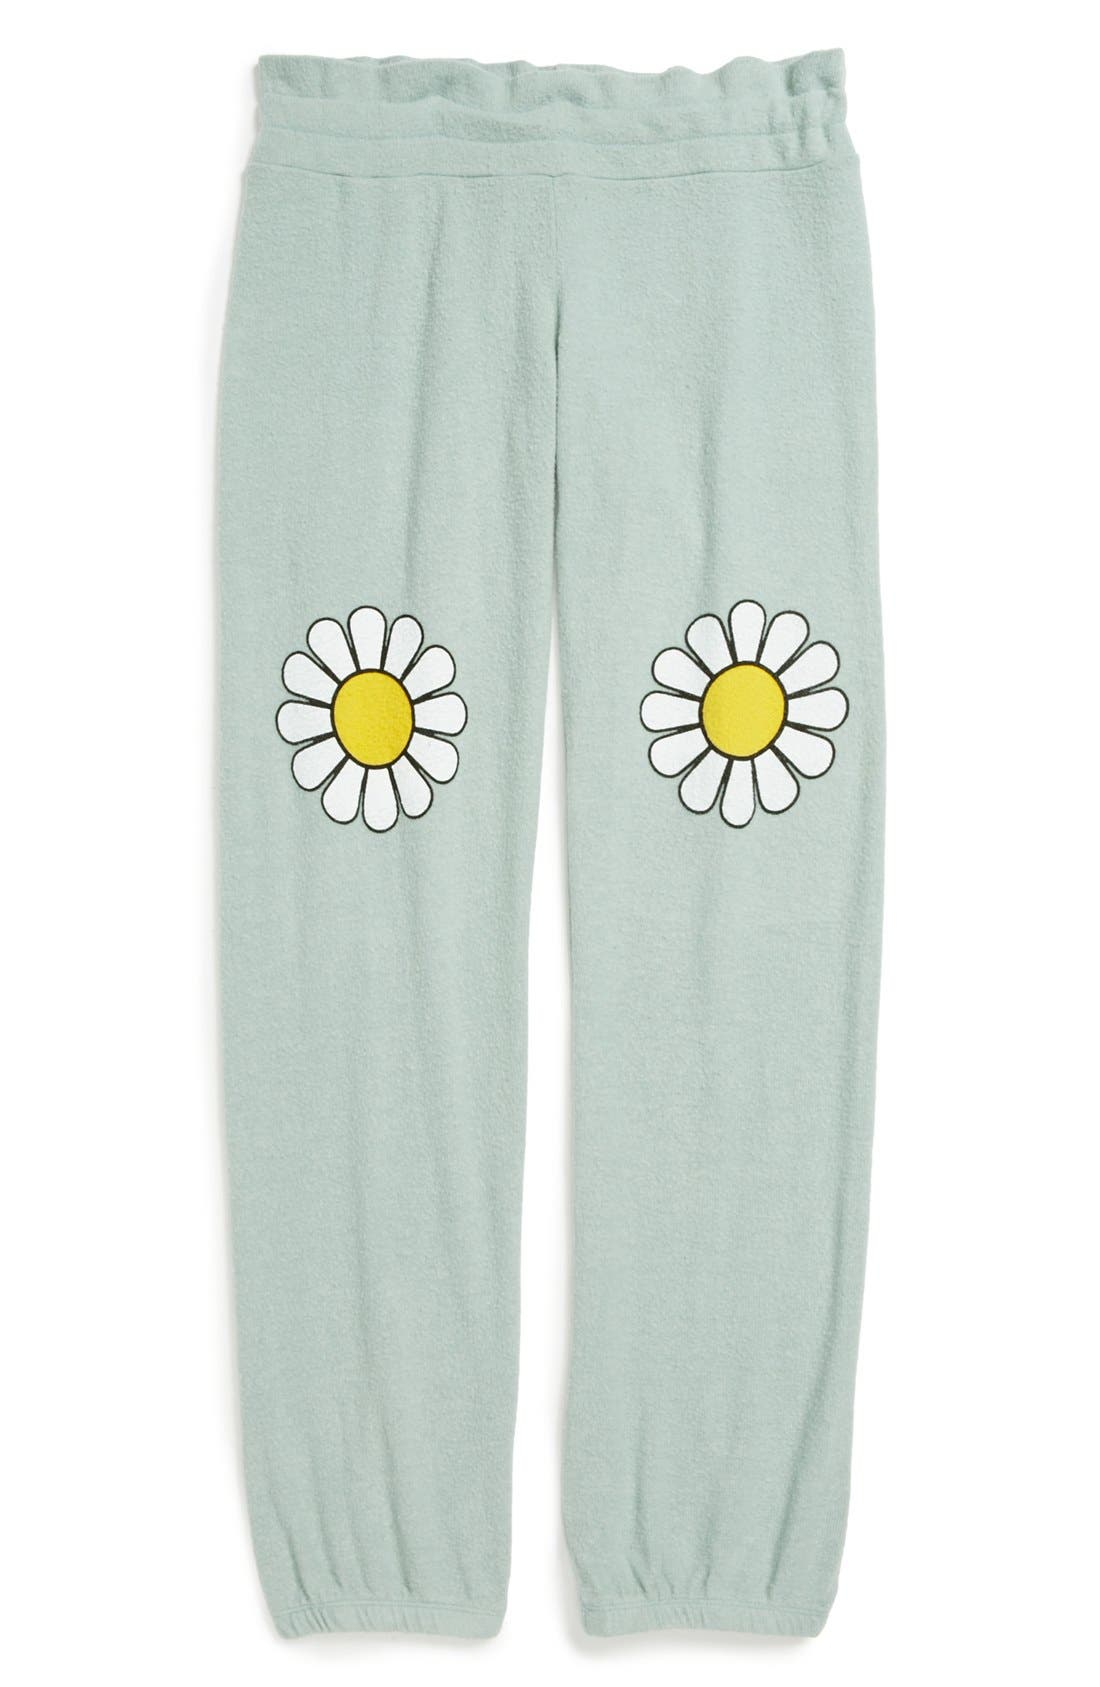 Alternate Image 1 Selected - Wildfox 'Oh Daisy' Pants (Big Girls)